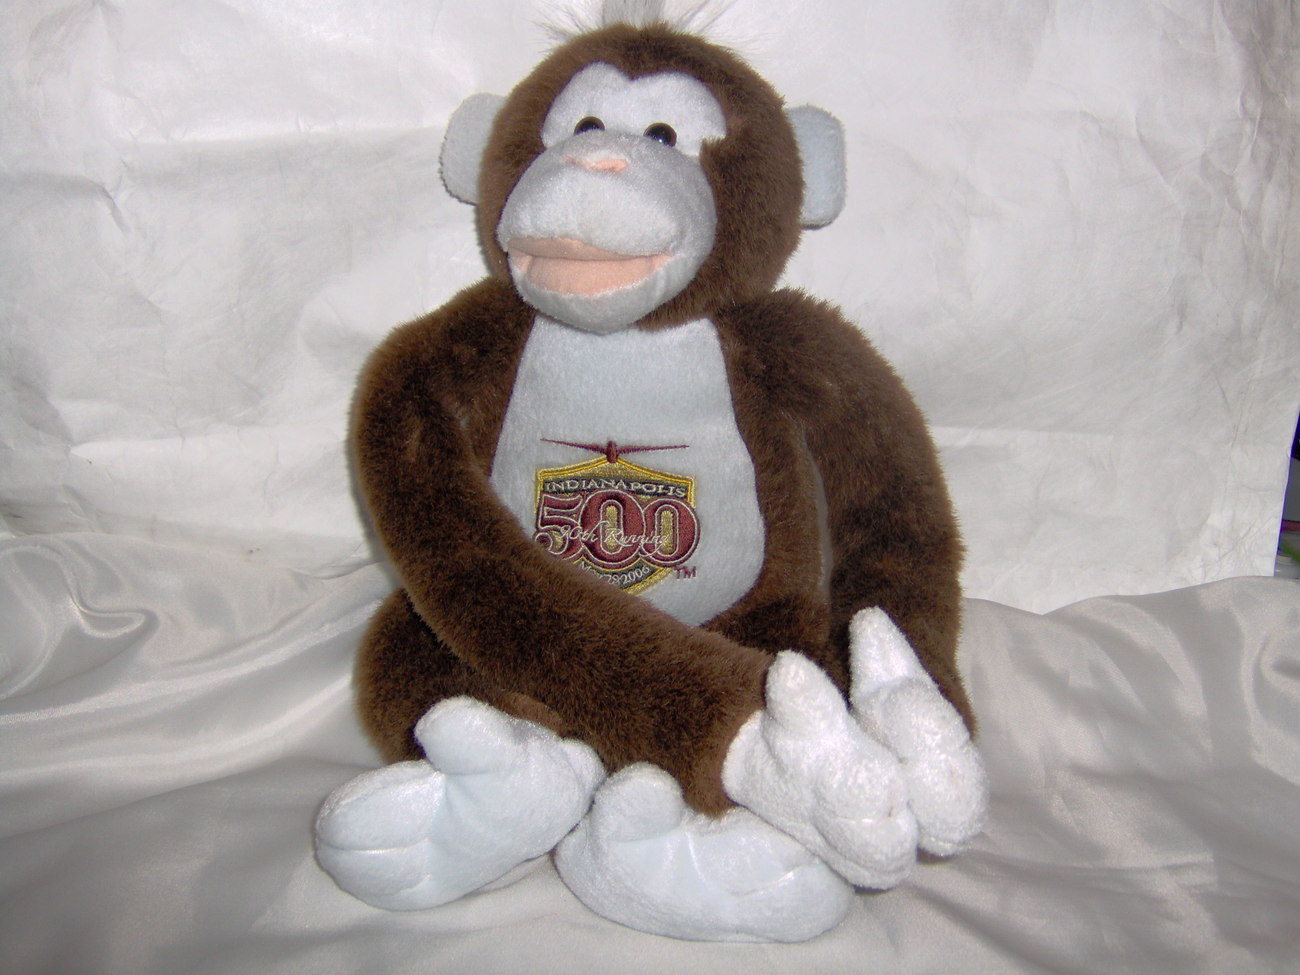 Indianapolis Indy 500 90th Running Souvenir Monkey